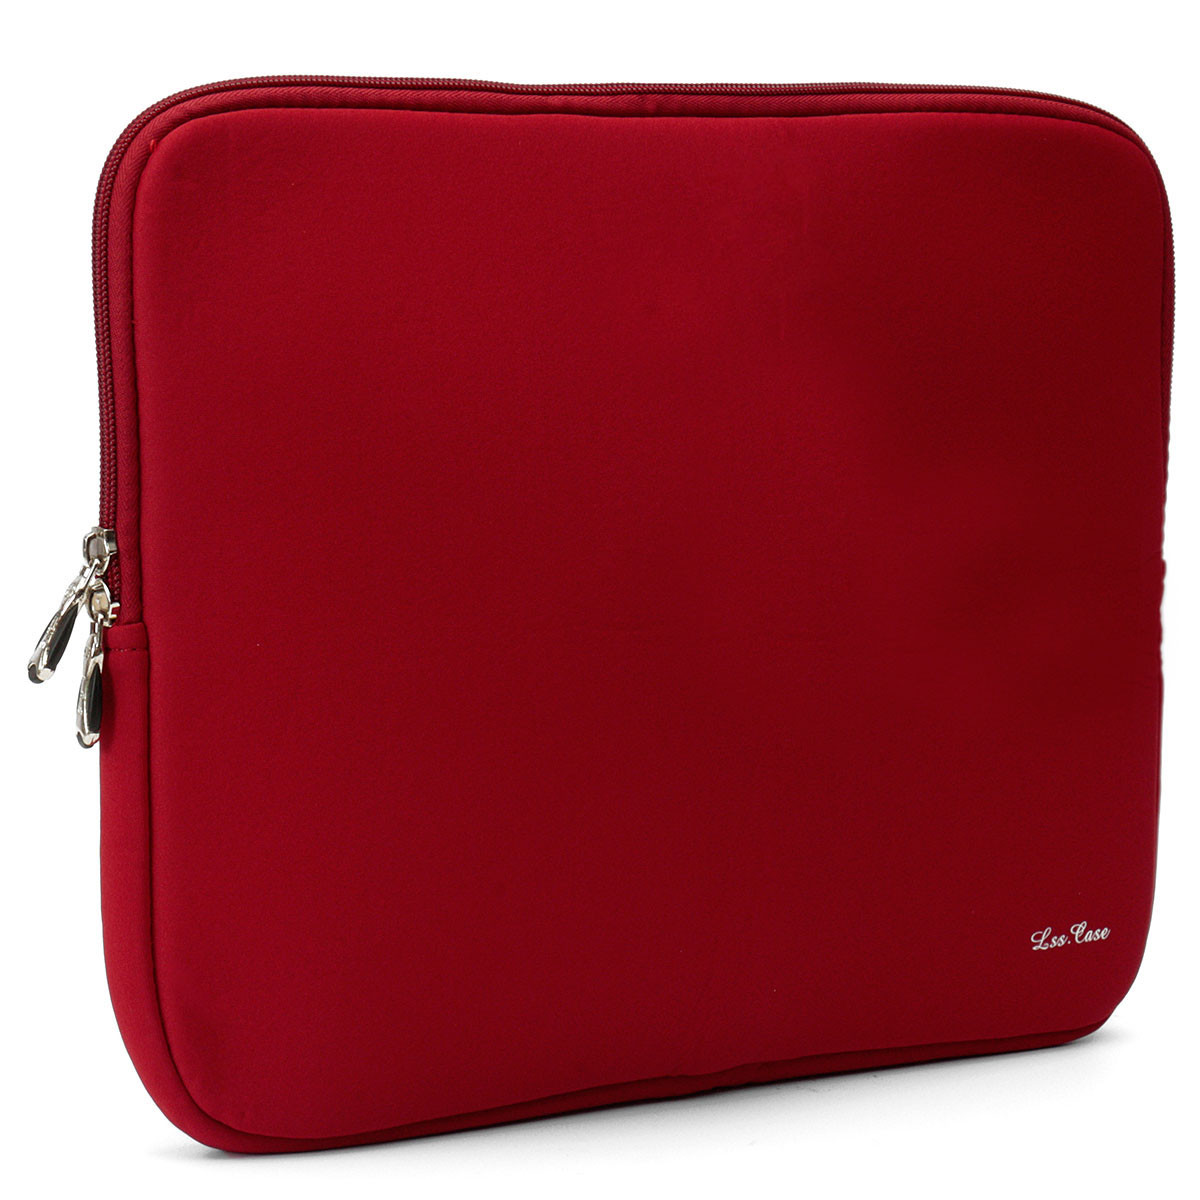 Squishy Laptop Cases : Laptop Soft Case Bag Cover Sleeve Pouch For Apple 14   Macbook Pro/Air Notebook eBay